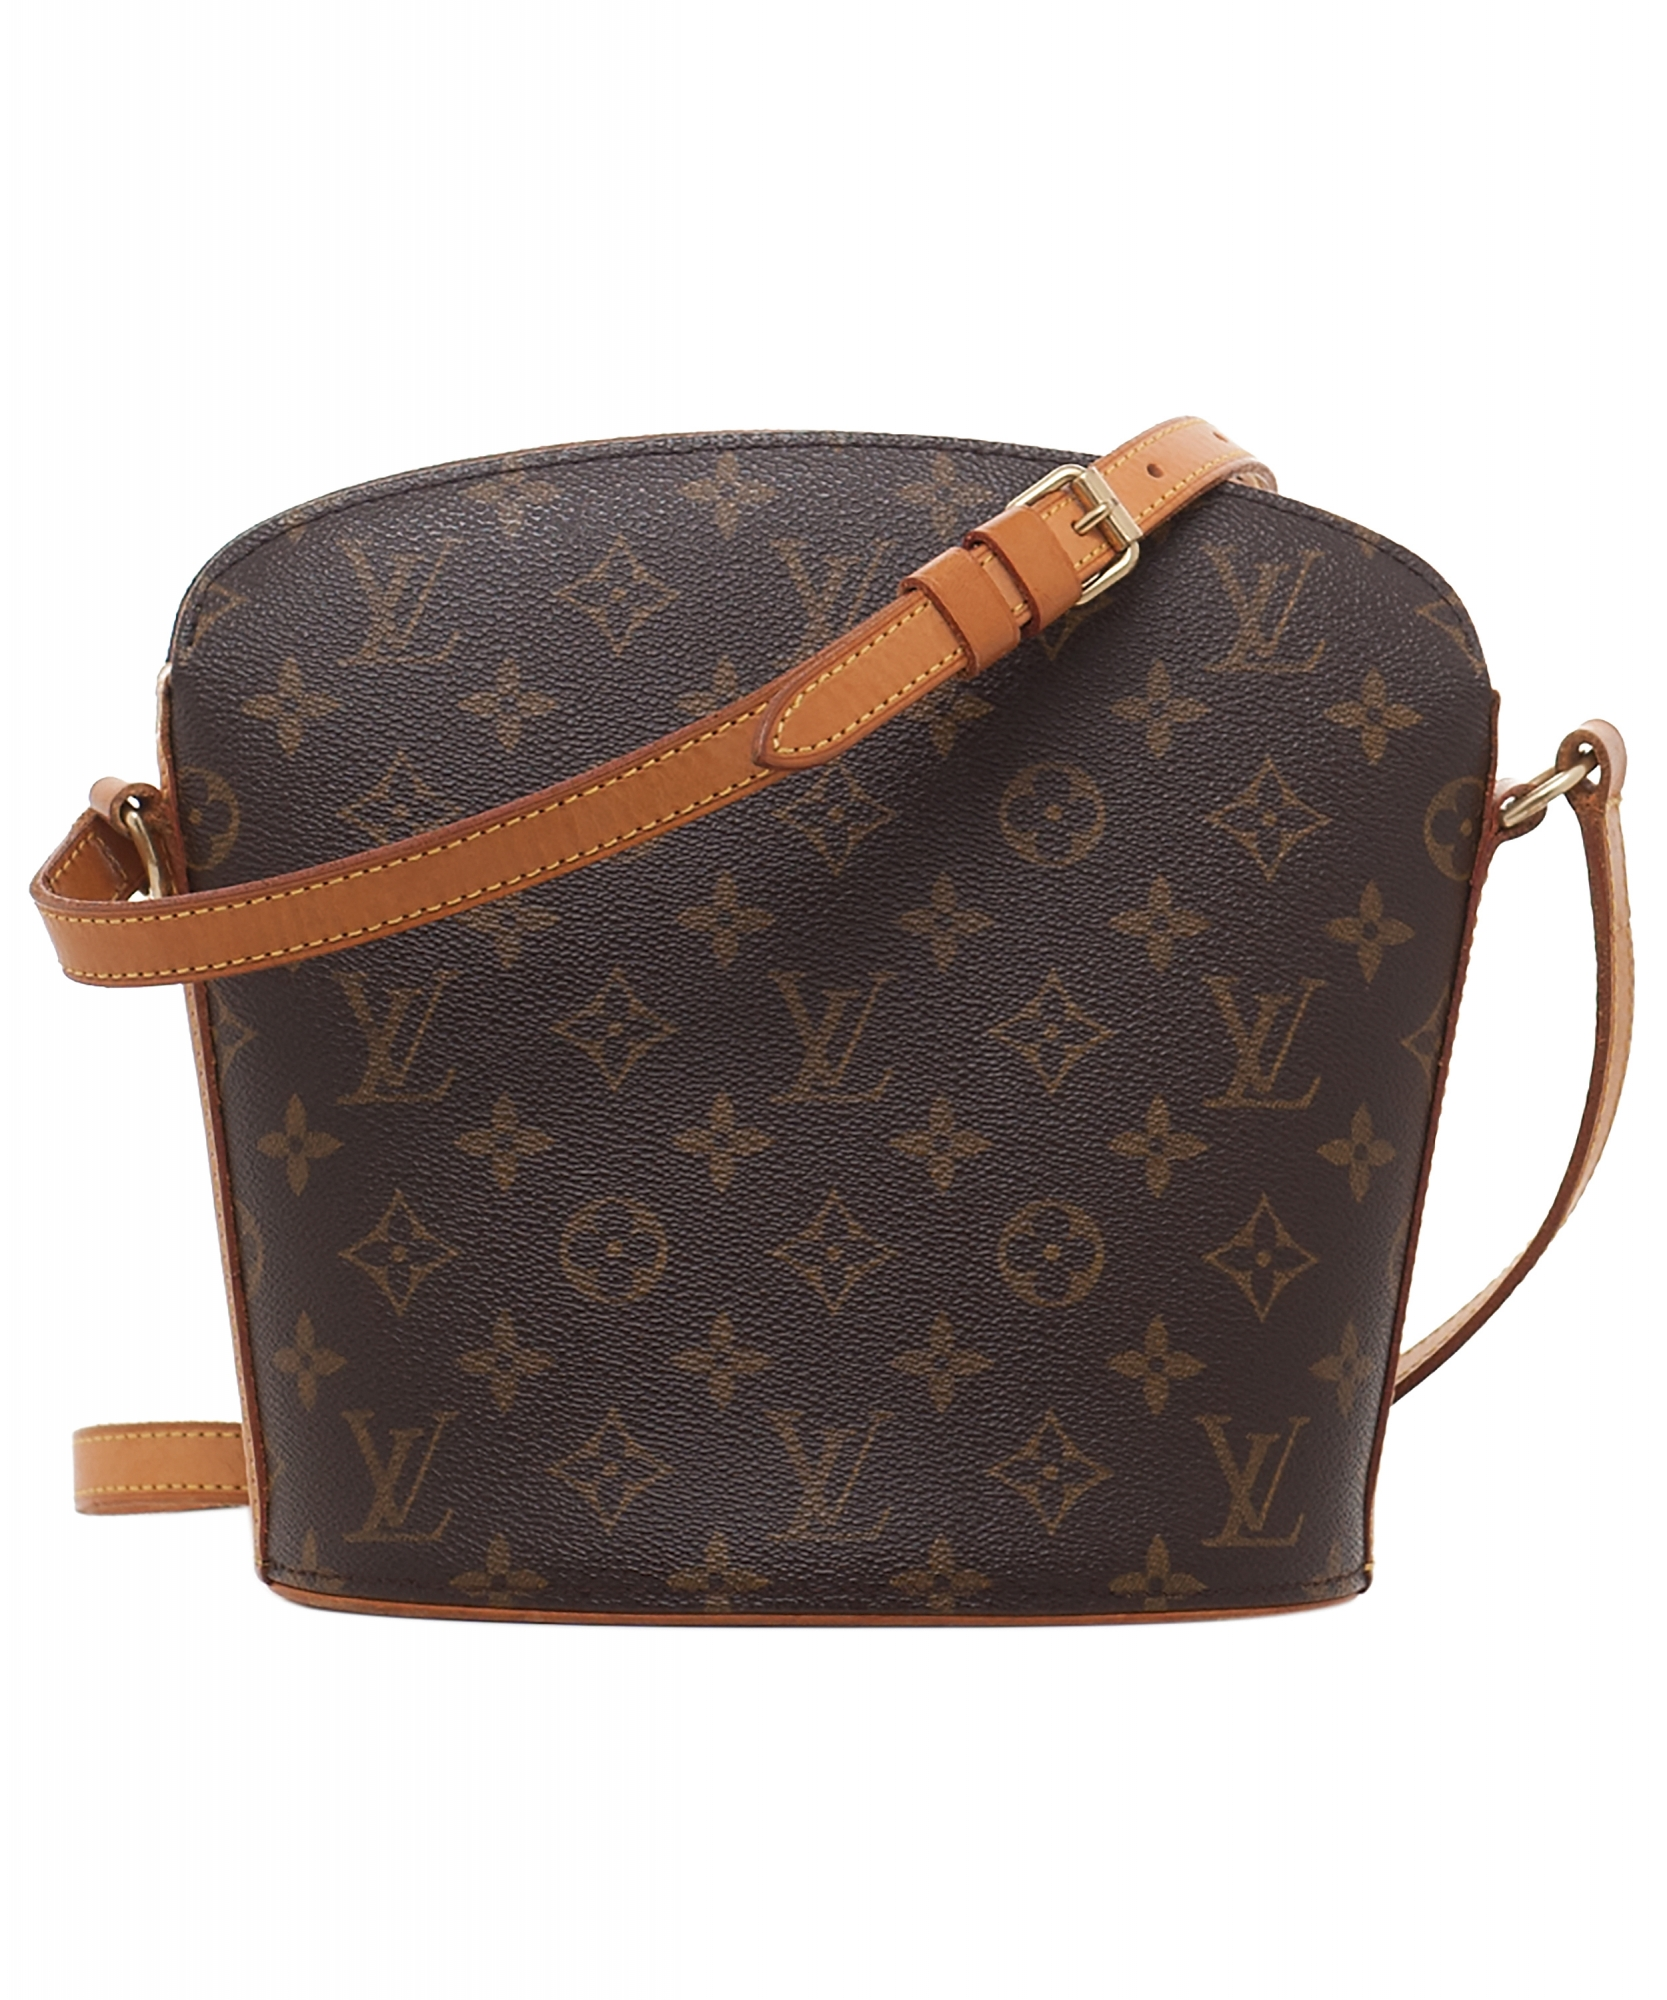 ca5856dbf1ed Louis Vuitton Drouot Monogram Crossbody Bag